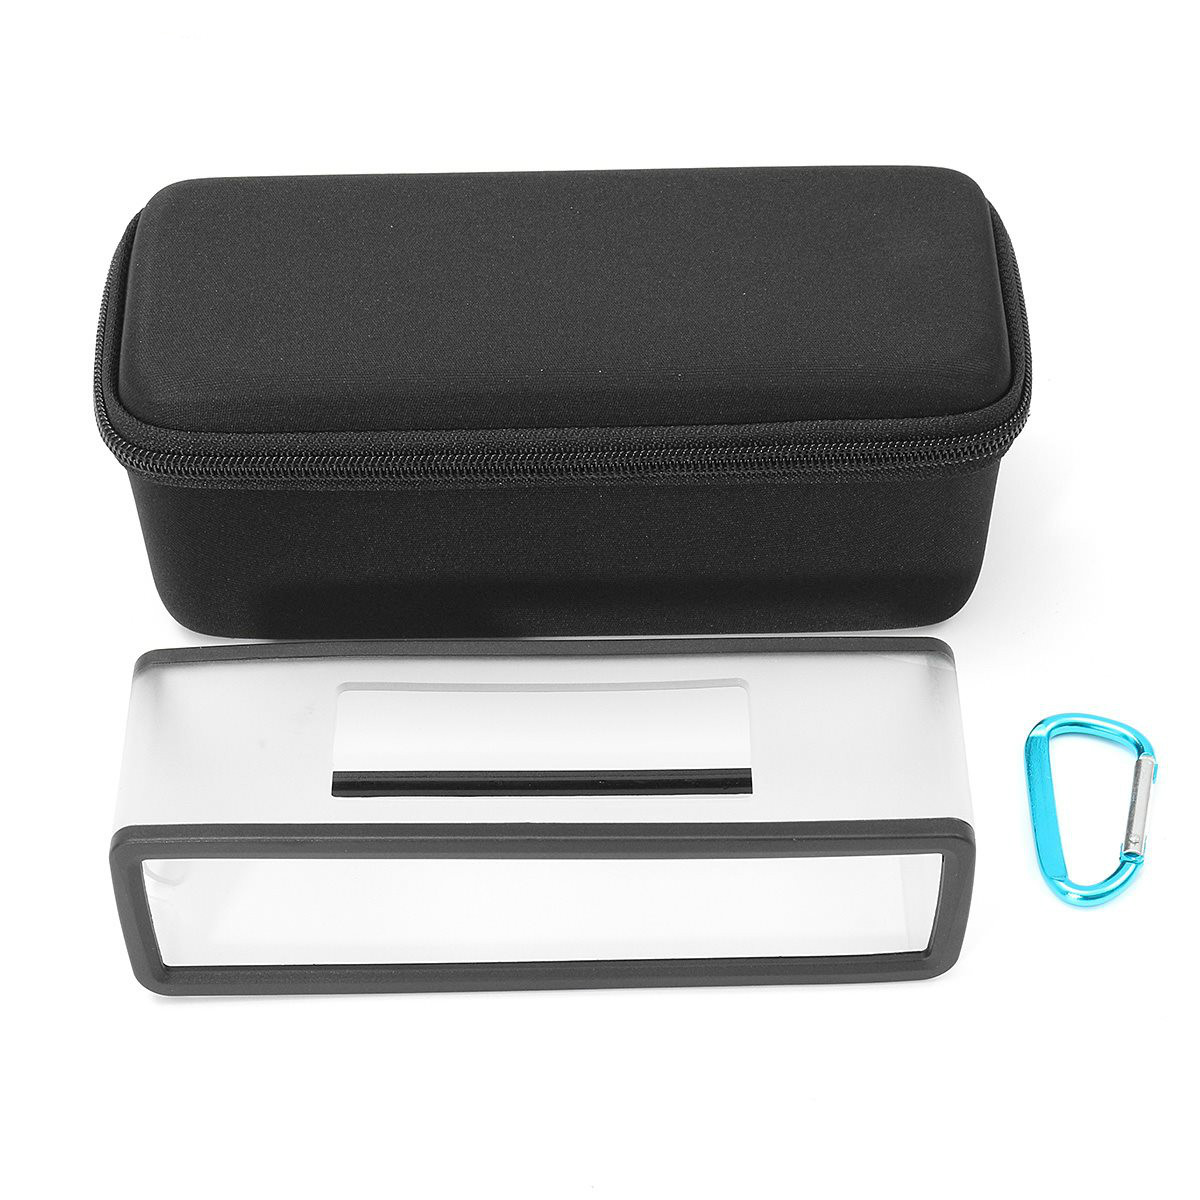 New Carry Travel Case Case For Bose Soundlink Mini/Mini 2 Bluetooth Speaker EVA Storage Case Portable Protective Cover Box